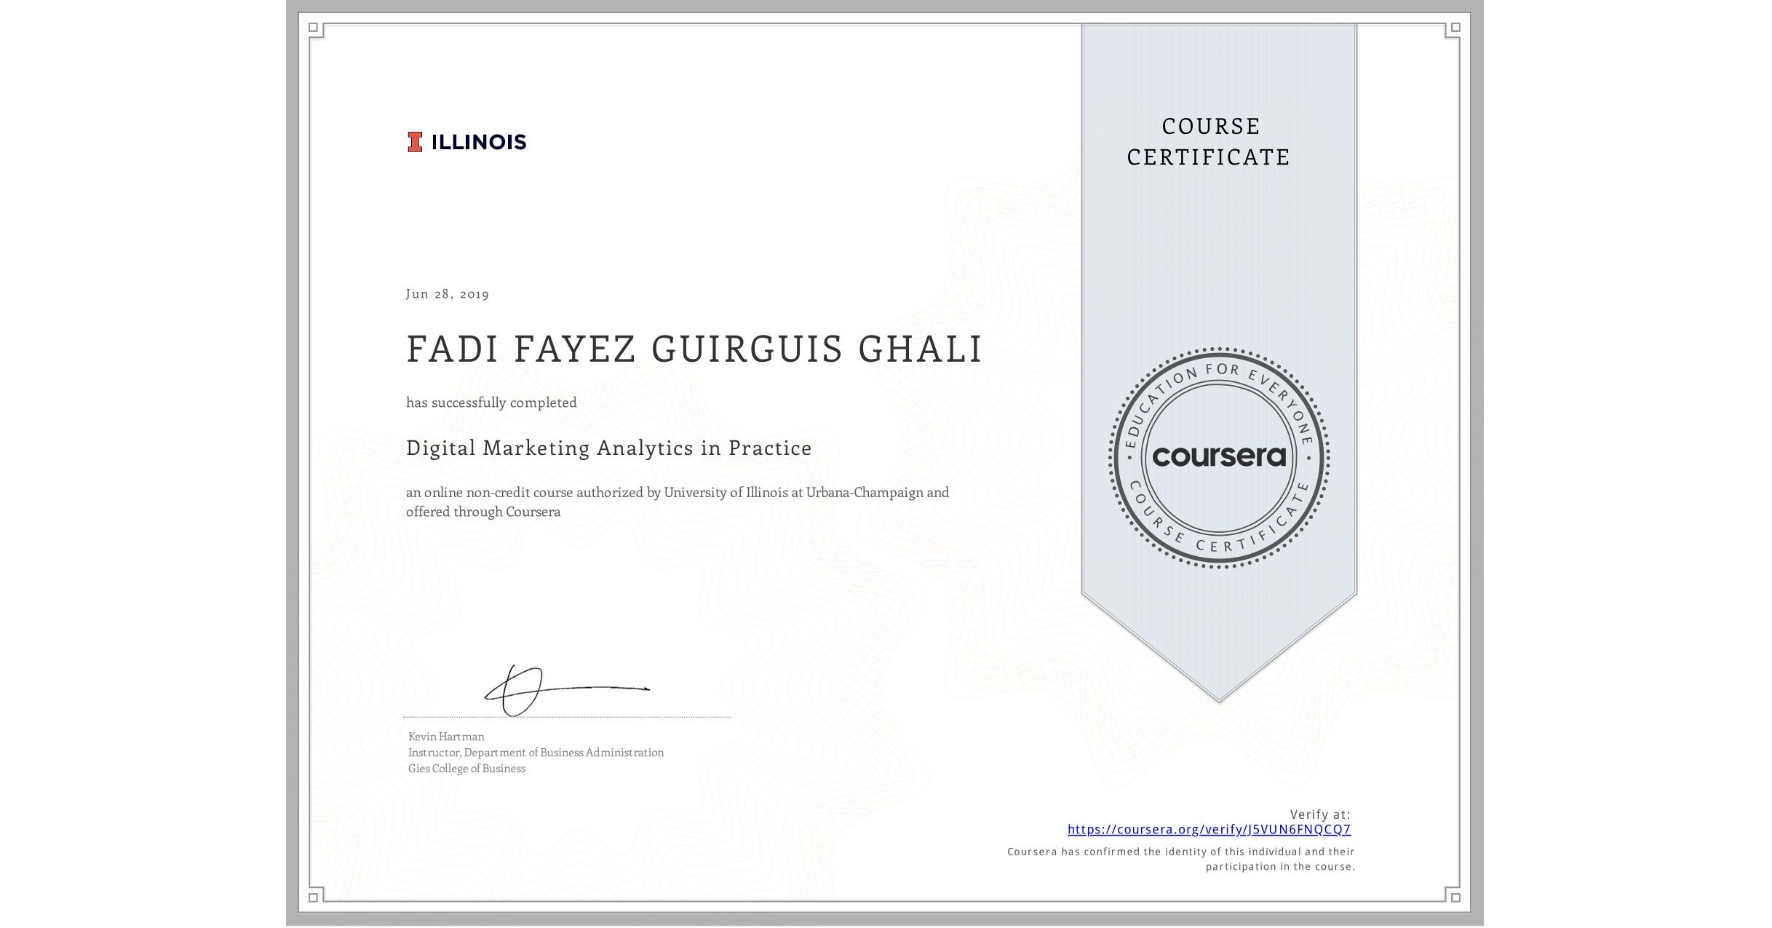 View certificate for FADI FAYEZ GUIRGUIS  GHALI, Digital Marketing Analytics in Practice, an online non-credit course authorized by University of Illinois at Urbana-Champaign and offered through Coursera